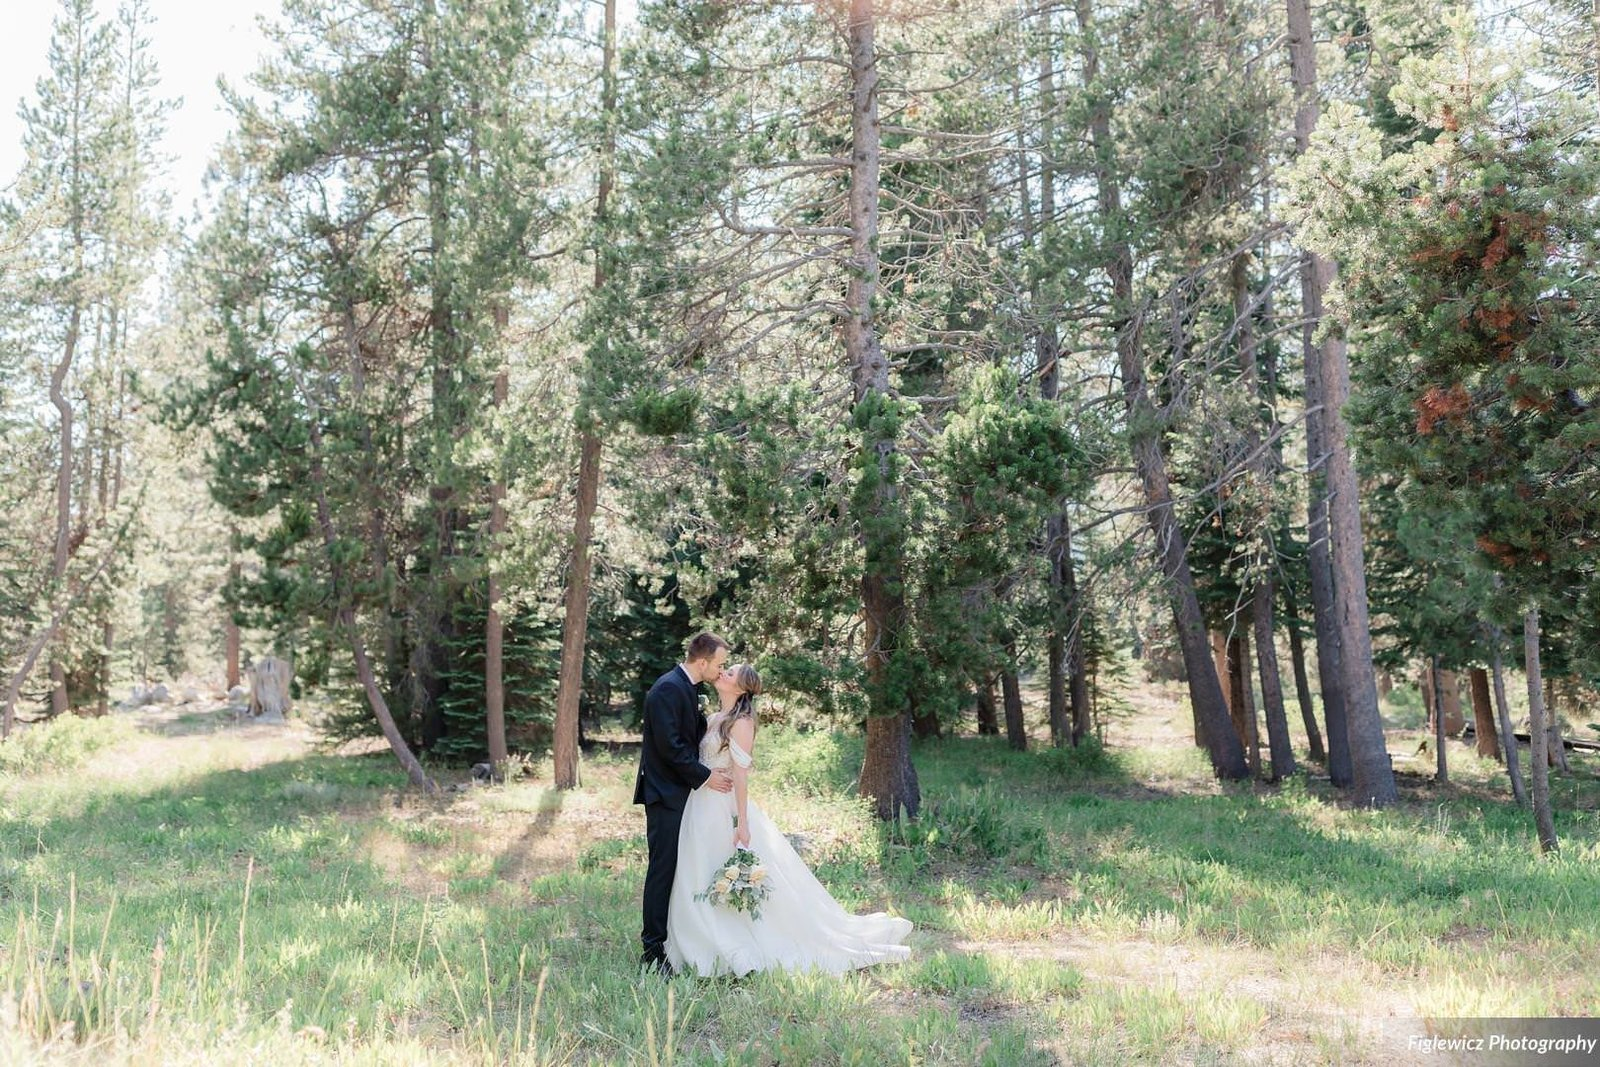 Garden_Tinsley_FiglewiczPhotography_LakeTahoeWeddingSquawValleyCreekTaylorBrendan00072_big